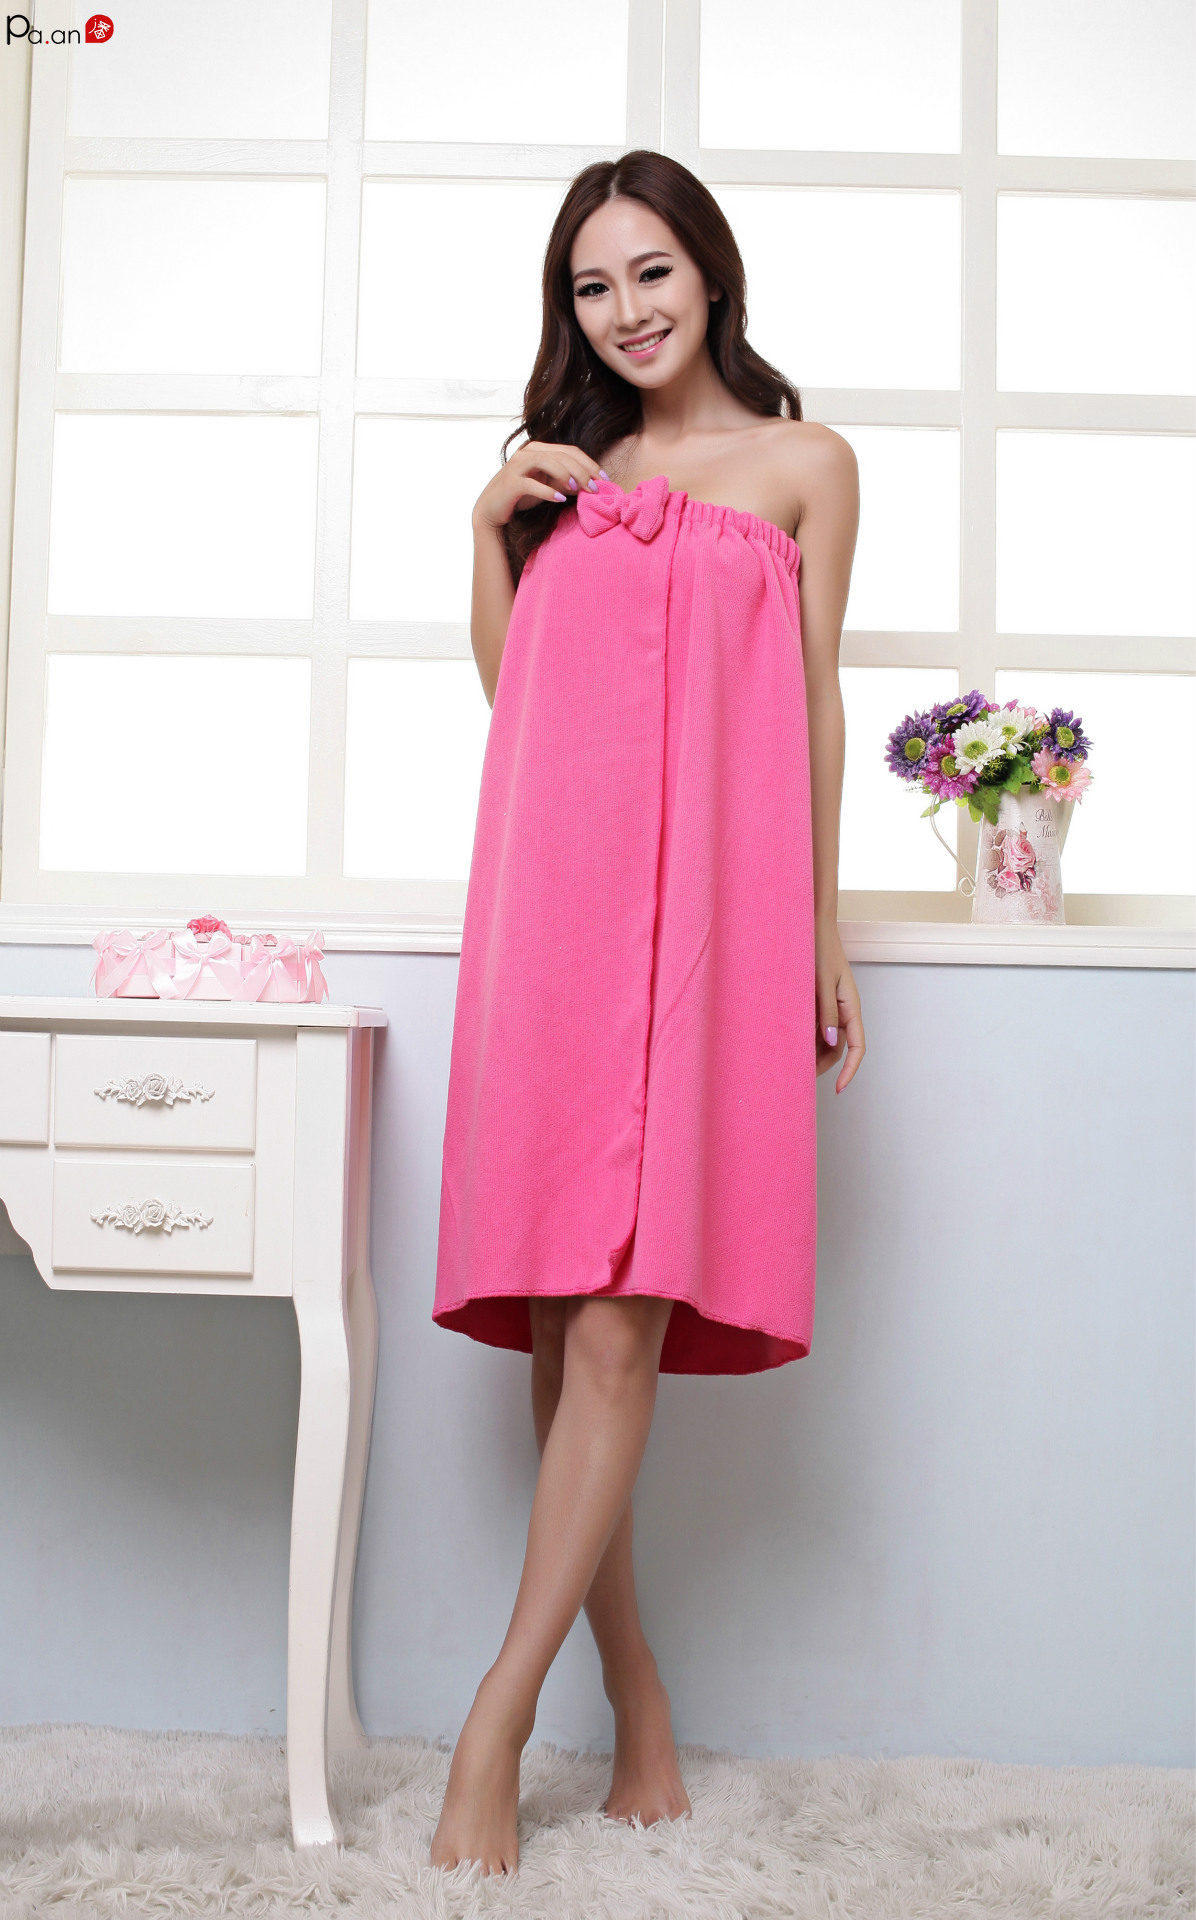 Charming Tube Top Microfiber Bathroom Towels Cute Bowknot Bath Dress Sexy Beauty Salon Skirt for Pajama Party Towel